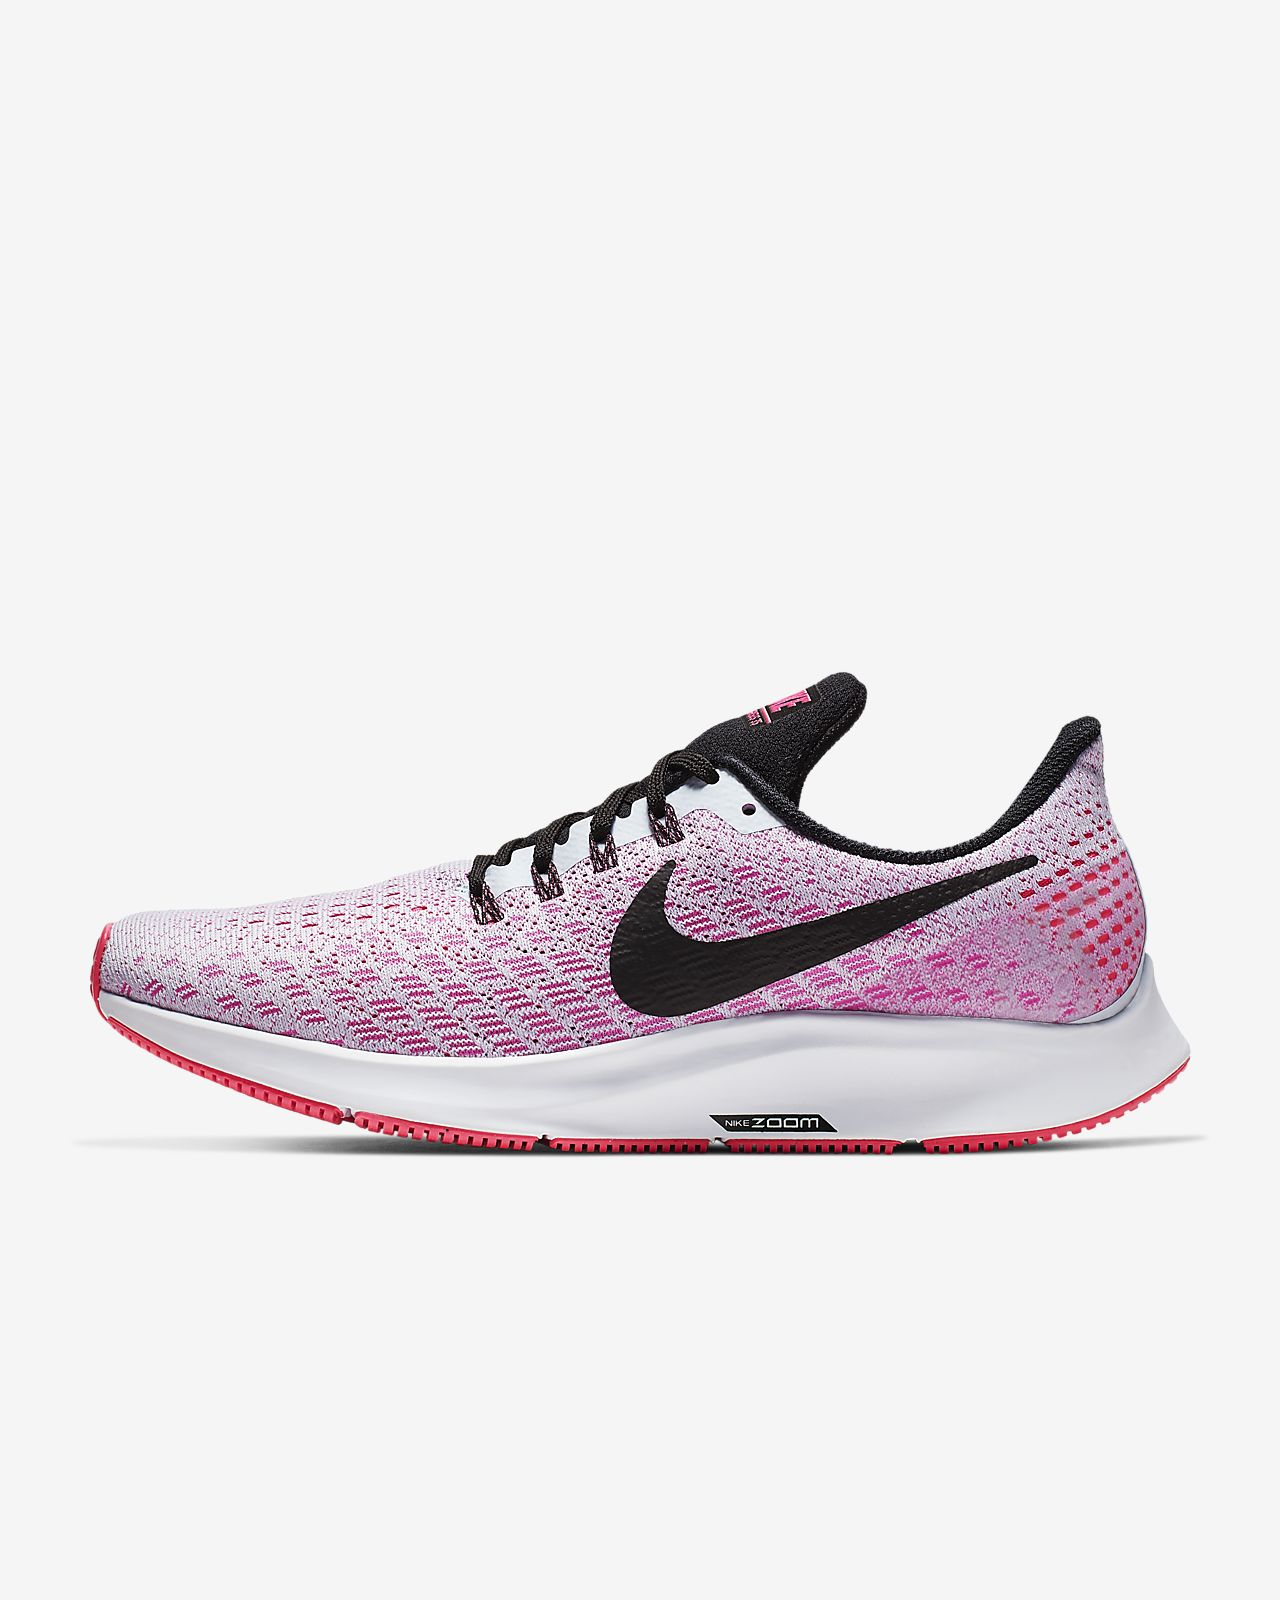 db423691dce3 Nike Air Zoom Pegasus 35 Women s Running Shoe. Nike.com